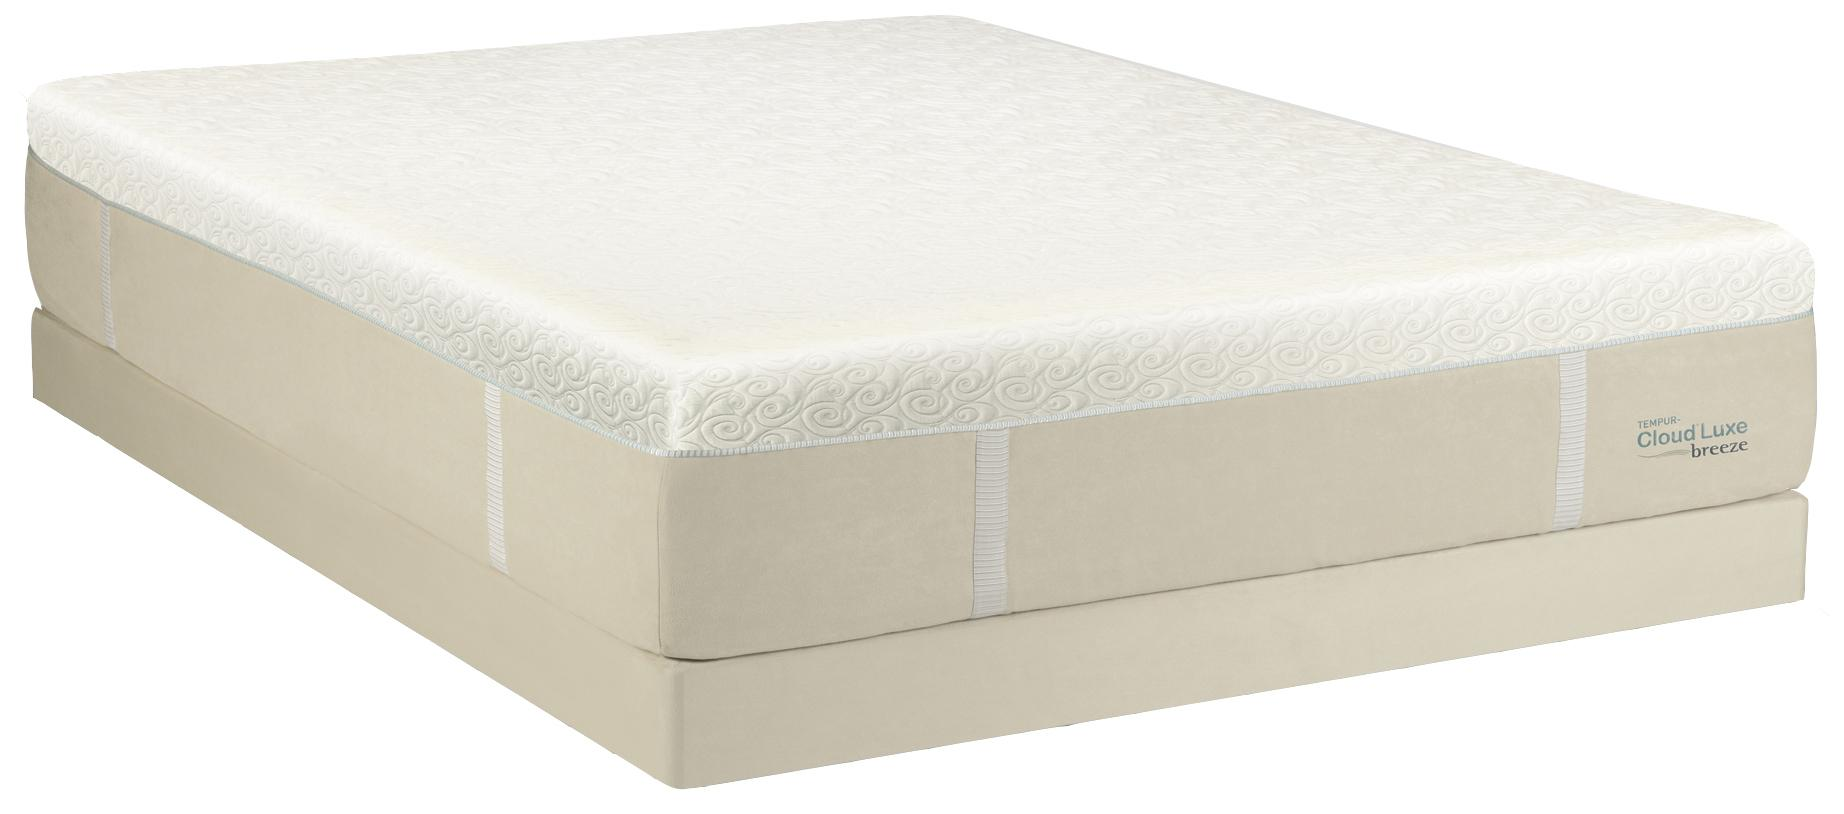 Tempur-Pedic® TEMPUR-Cloud® Luxe Breeze King Ultra Soft Mattress, LP Set - Item Number: 10109170+2x21520120